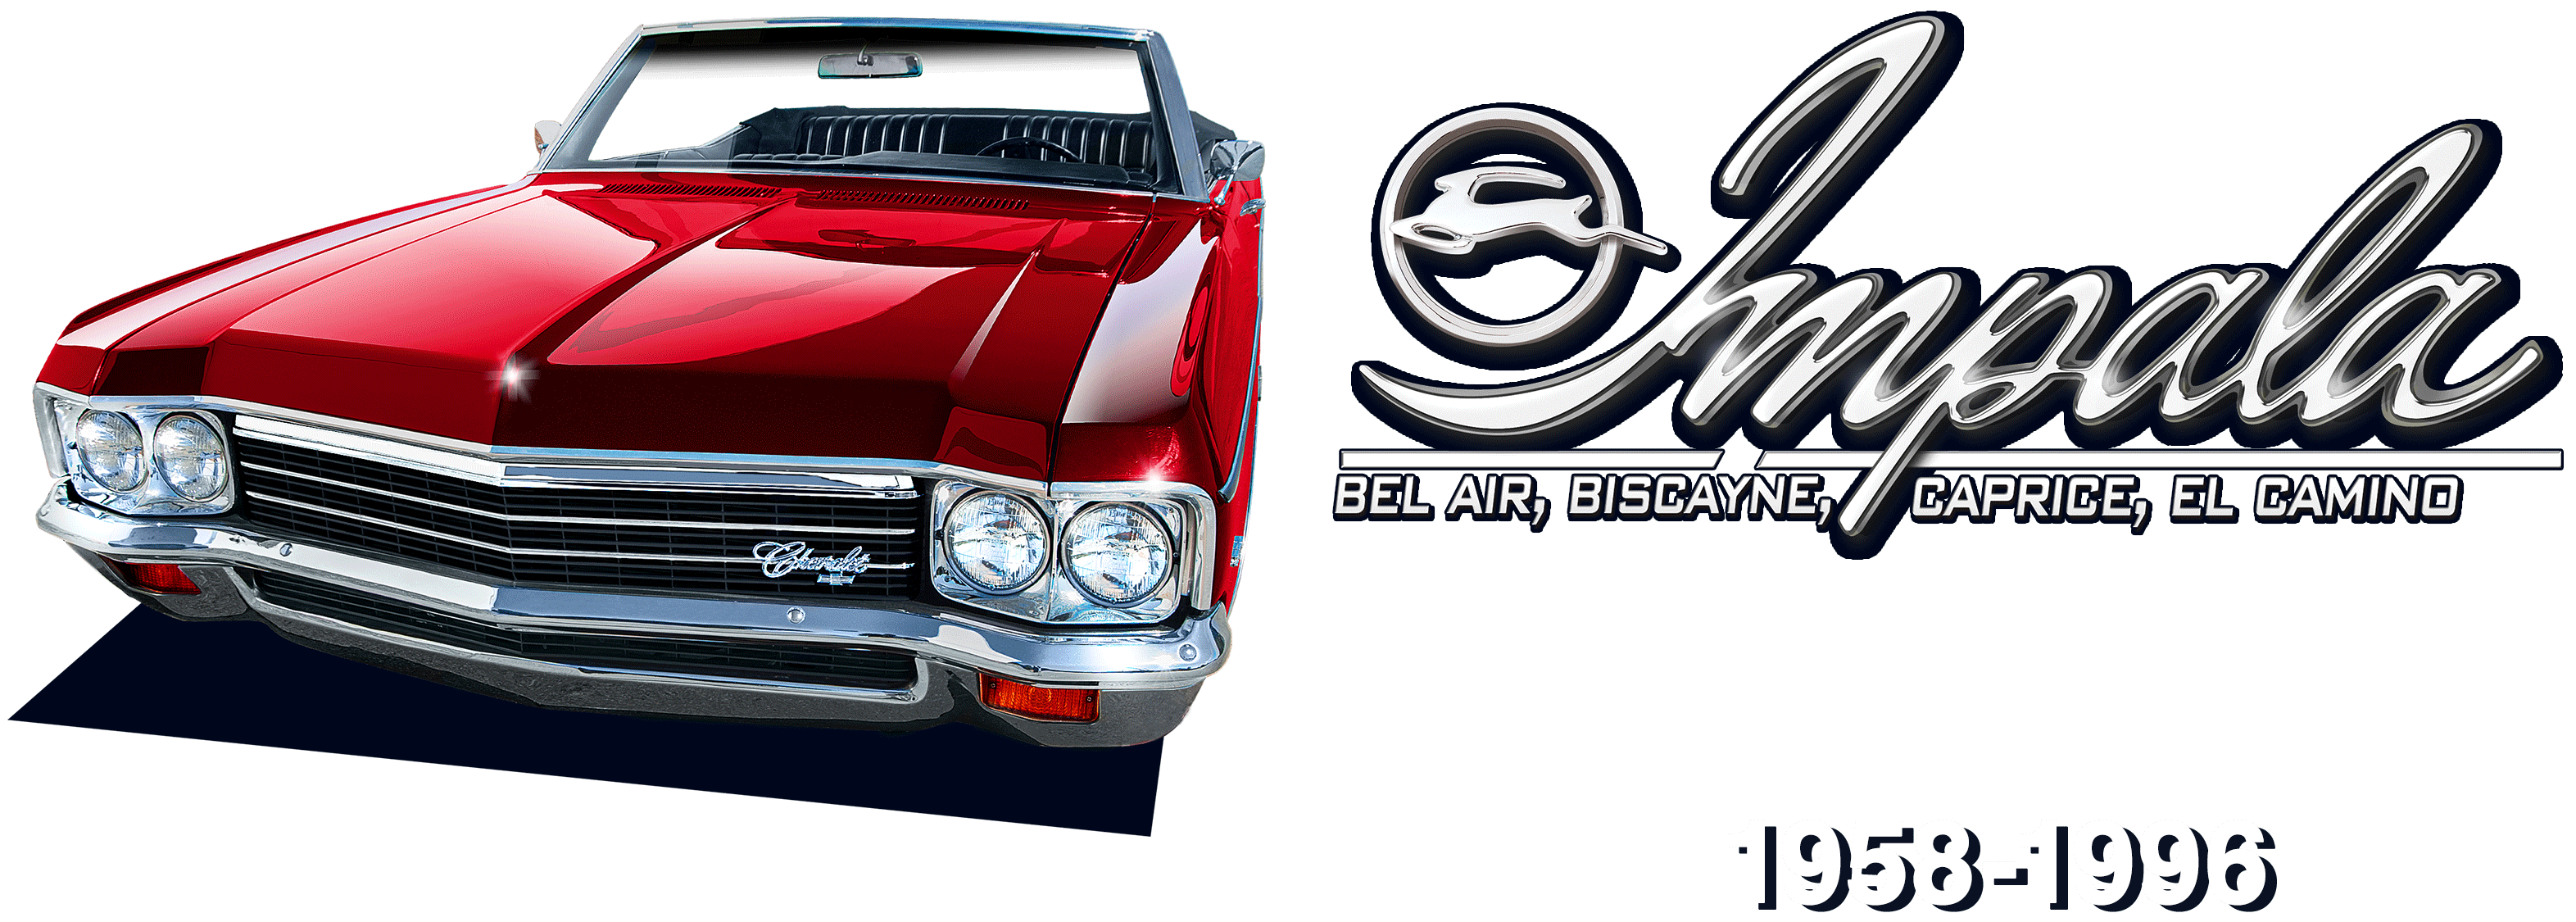 medium resolution of impala bel air biscayne caprice el camino 1958 1996